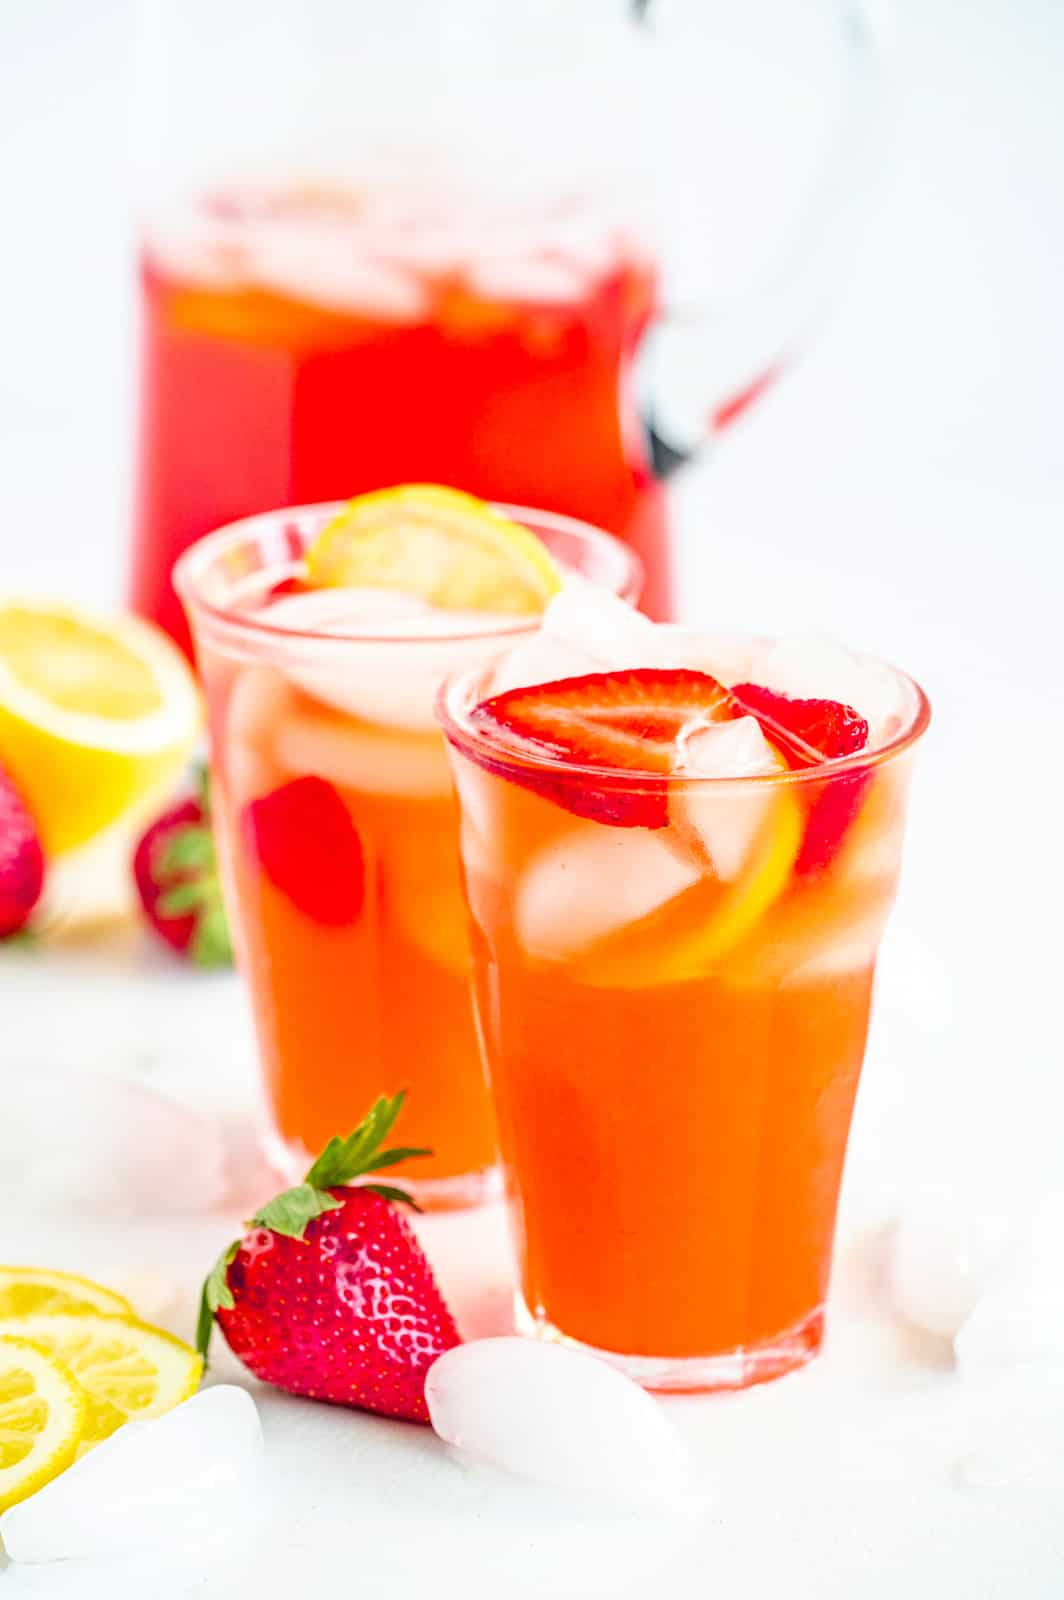 Strawberry Lemonade Recipe in glasses with pitcher in background